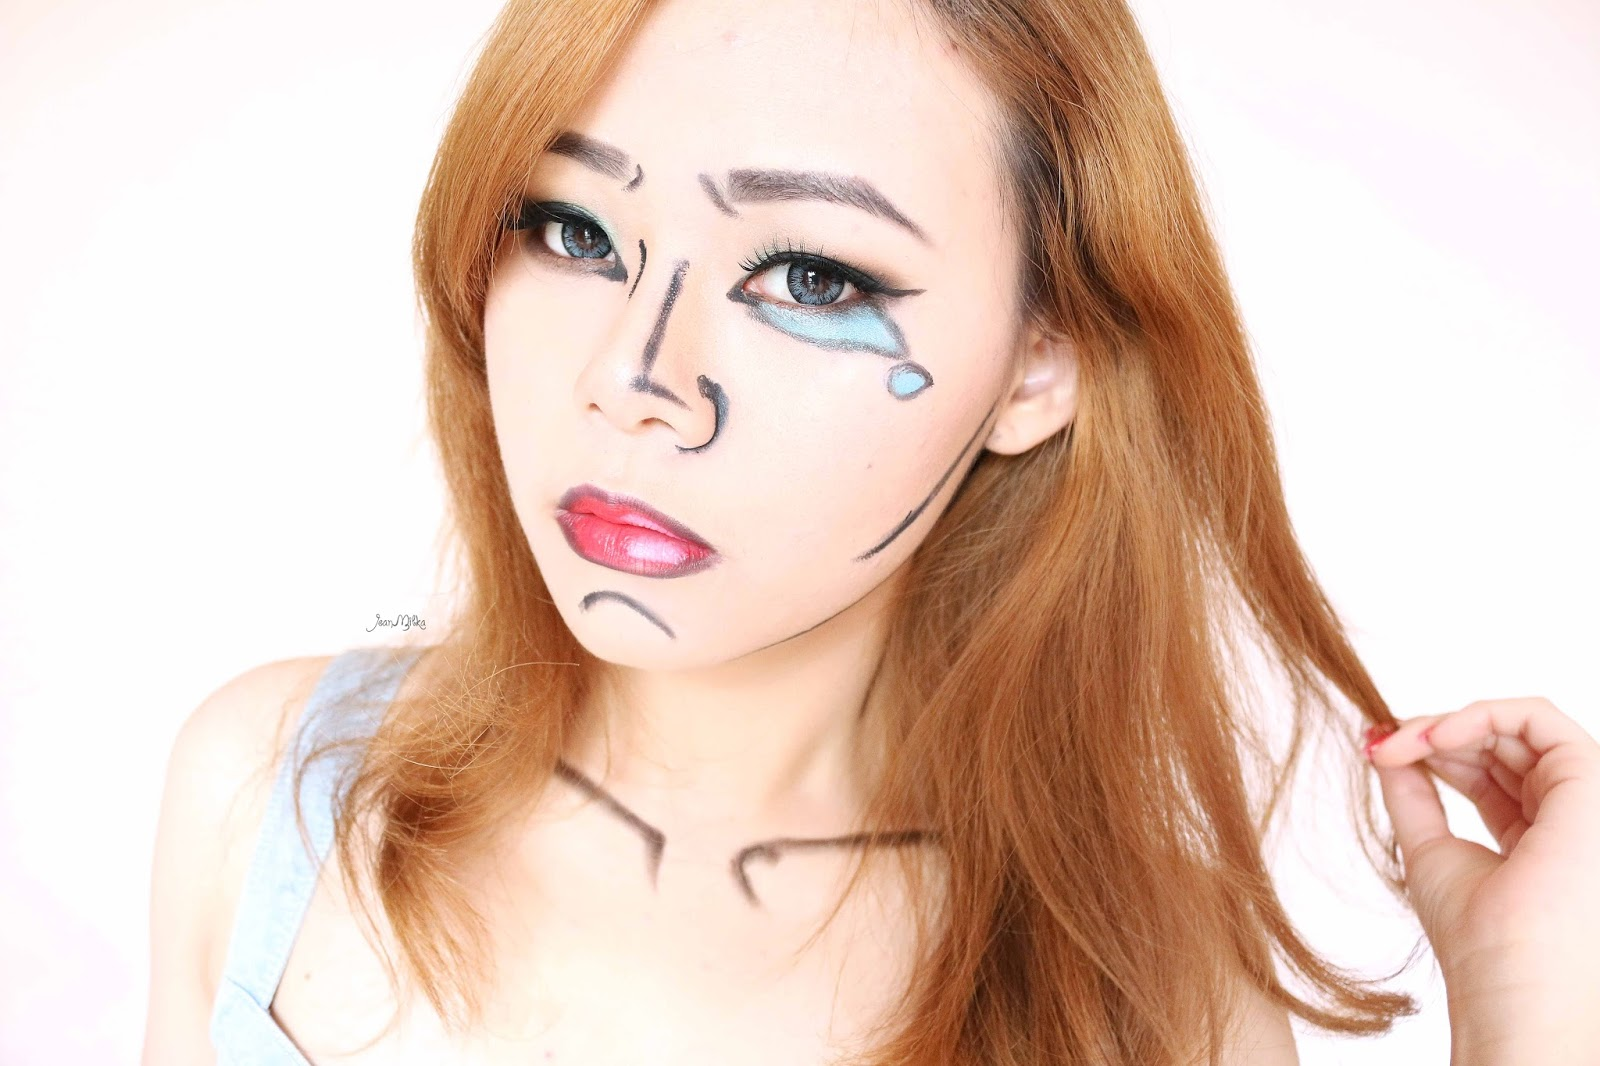 youtube, beauty, halloween, halloween makeup, pop art makeup, makeup, easy halloween makeup, halloween ideas, pop art, makeup tutorial, youtube, video, indonesia, blog